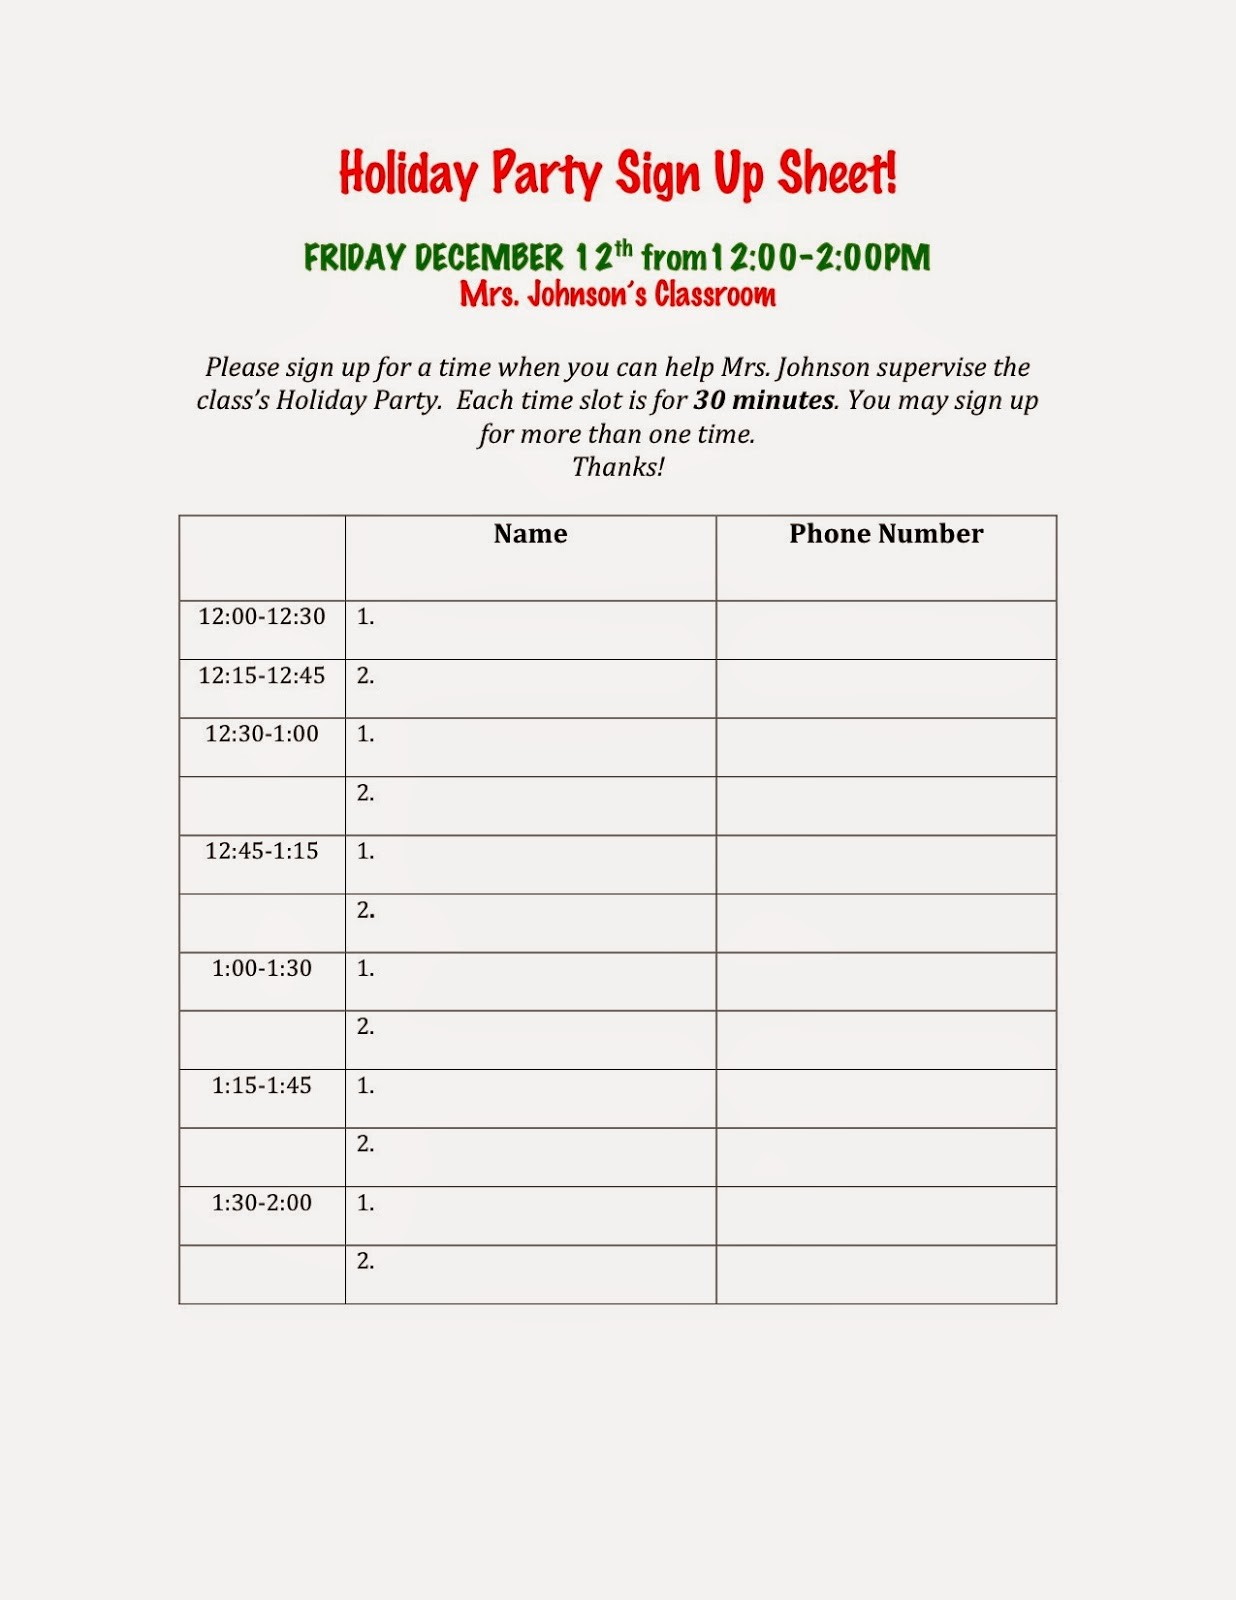 Holiday Sign Up Sheet Templates Beautiful Avenue B Holiday Party Sign Up Sheets